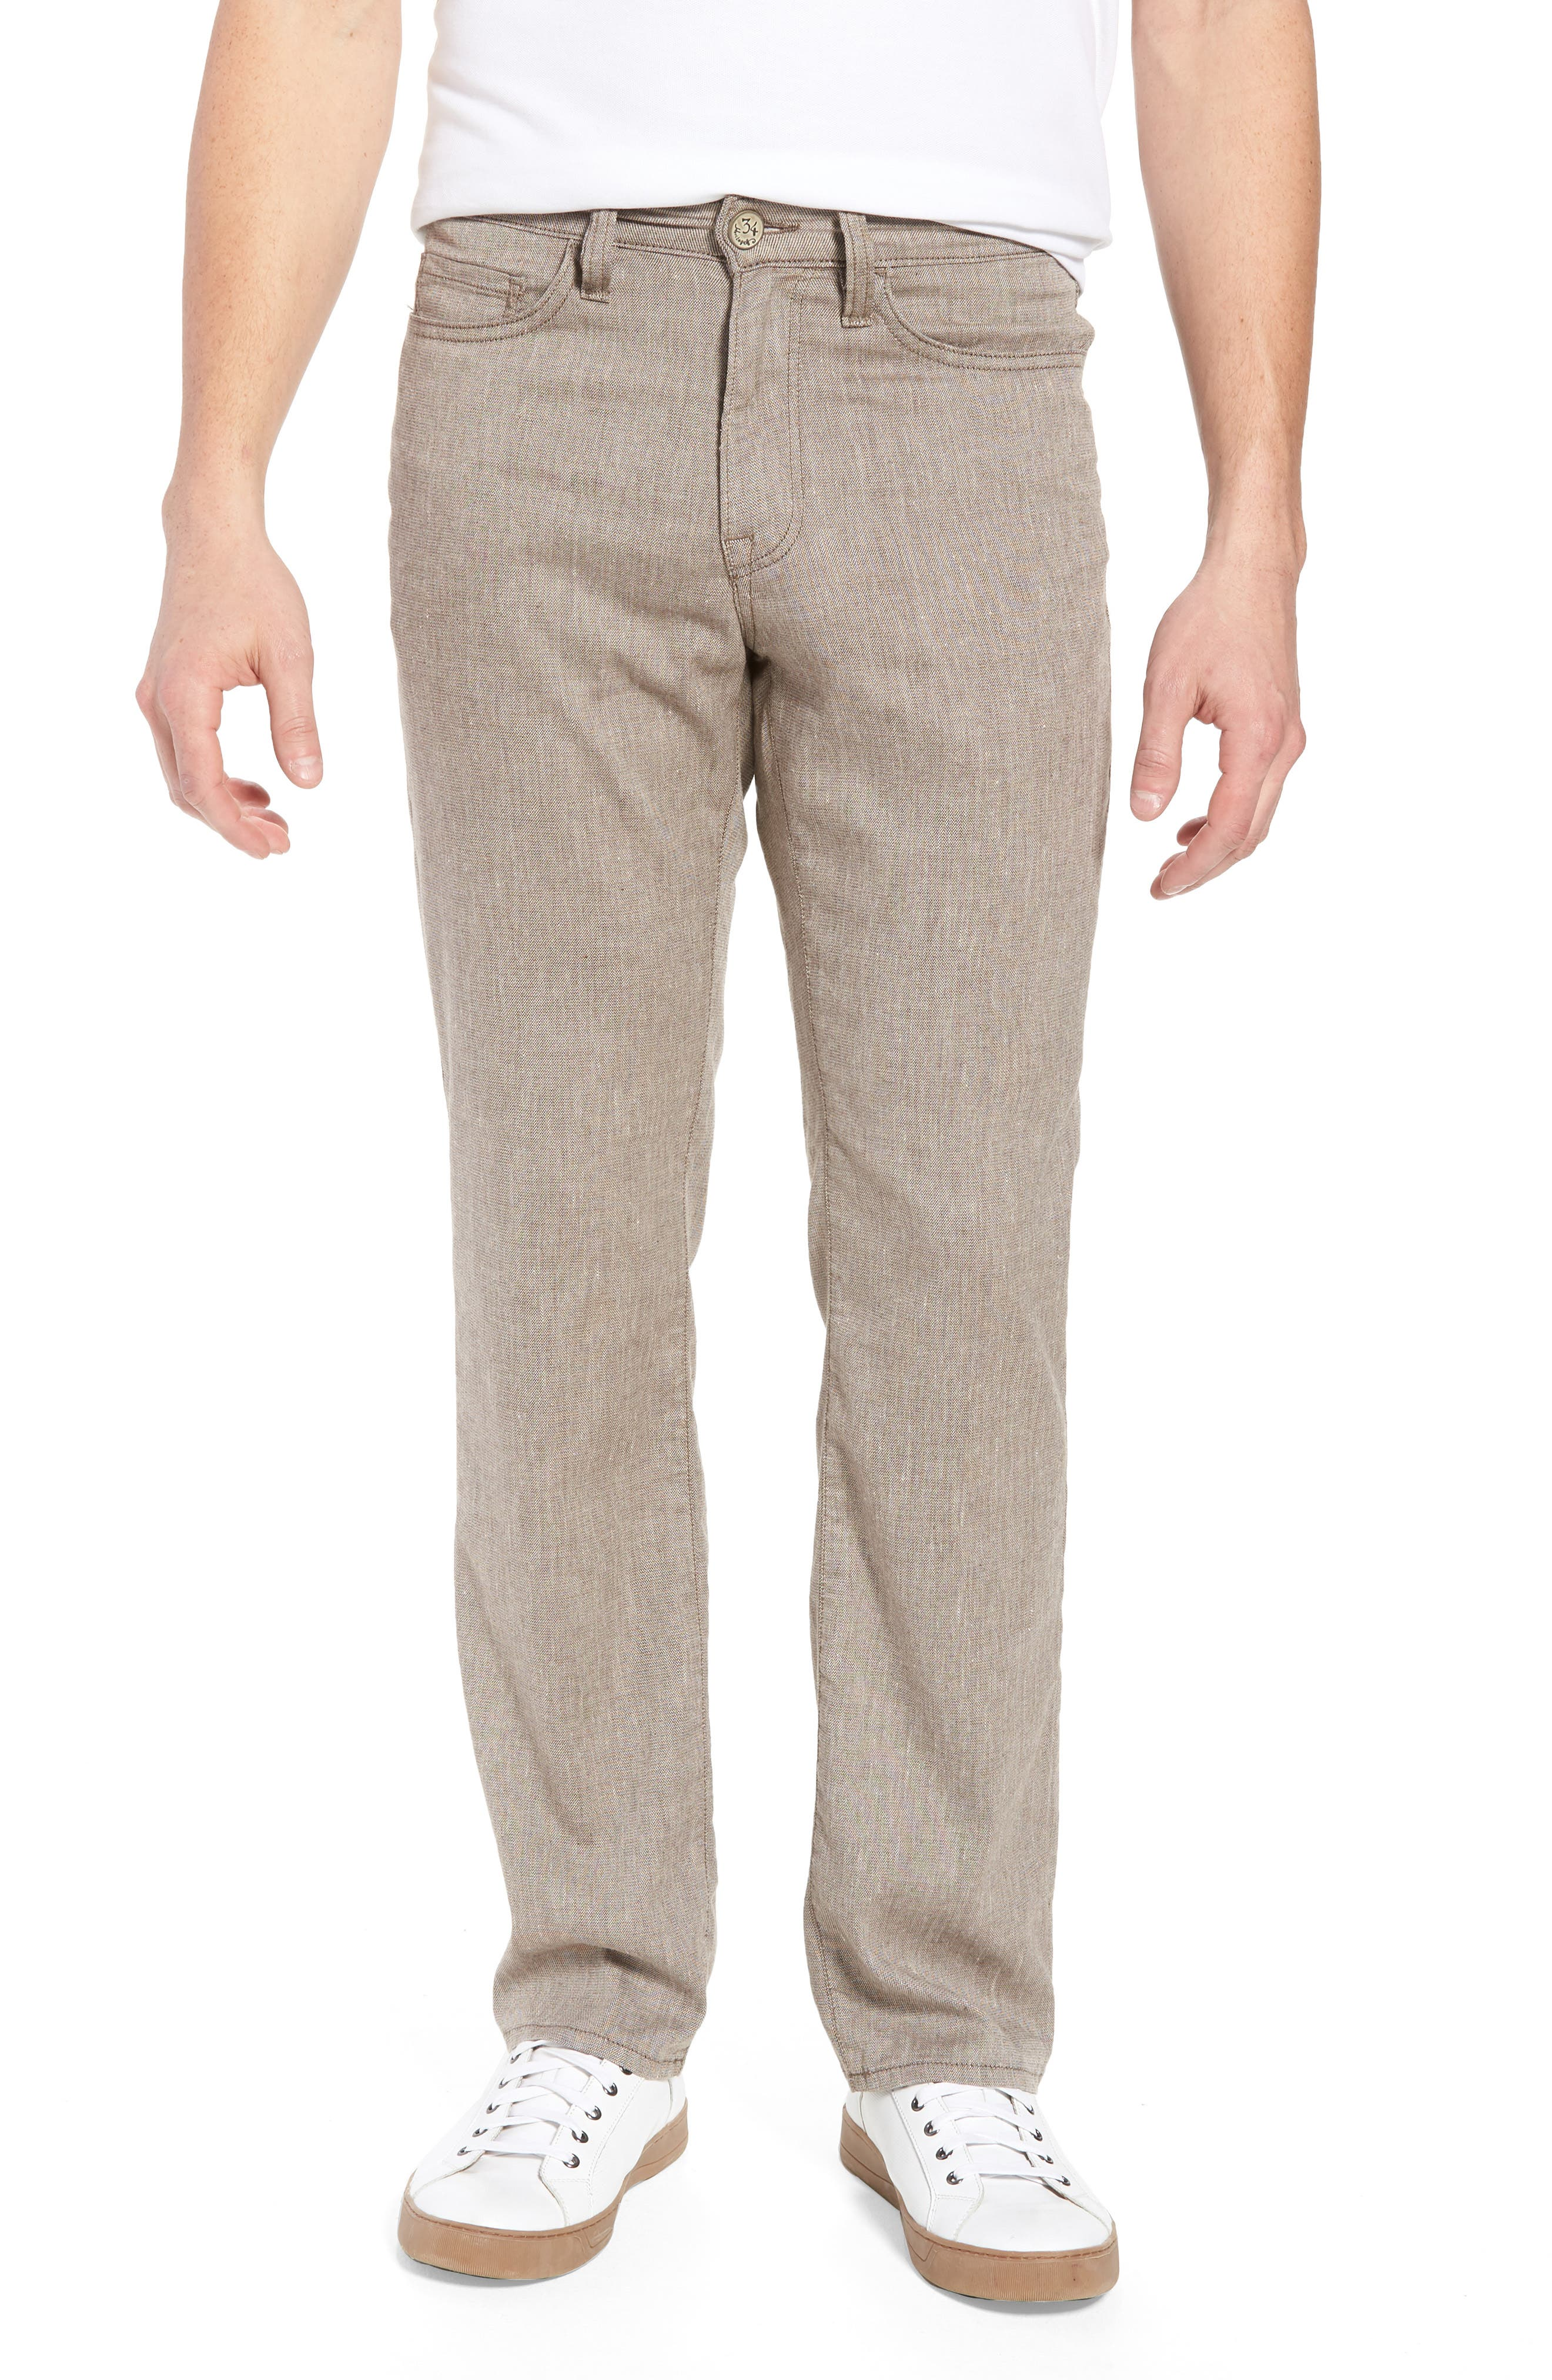 Charisma Relaxed Fit Pants,                         Main,                         color, Latte Textured